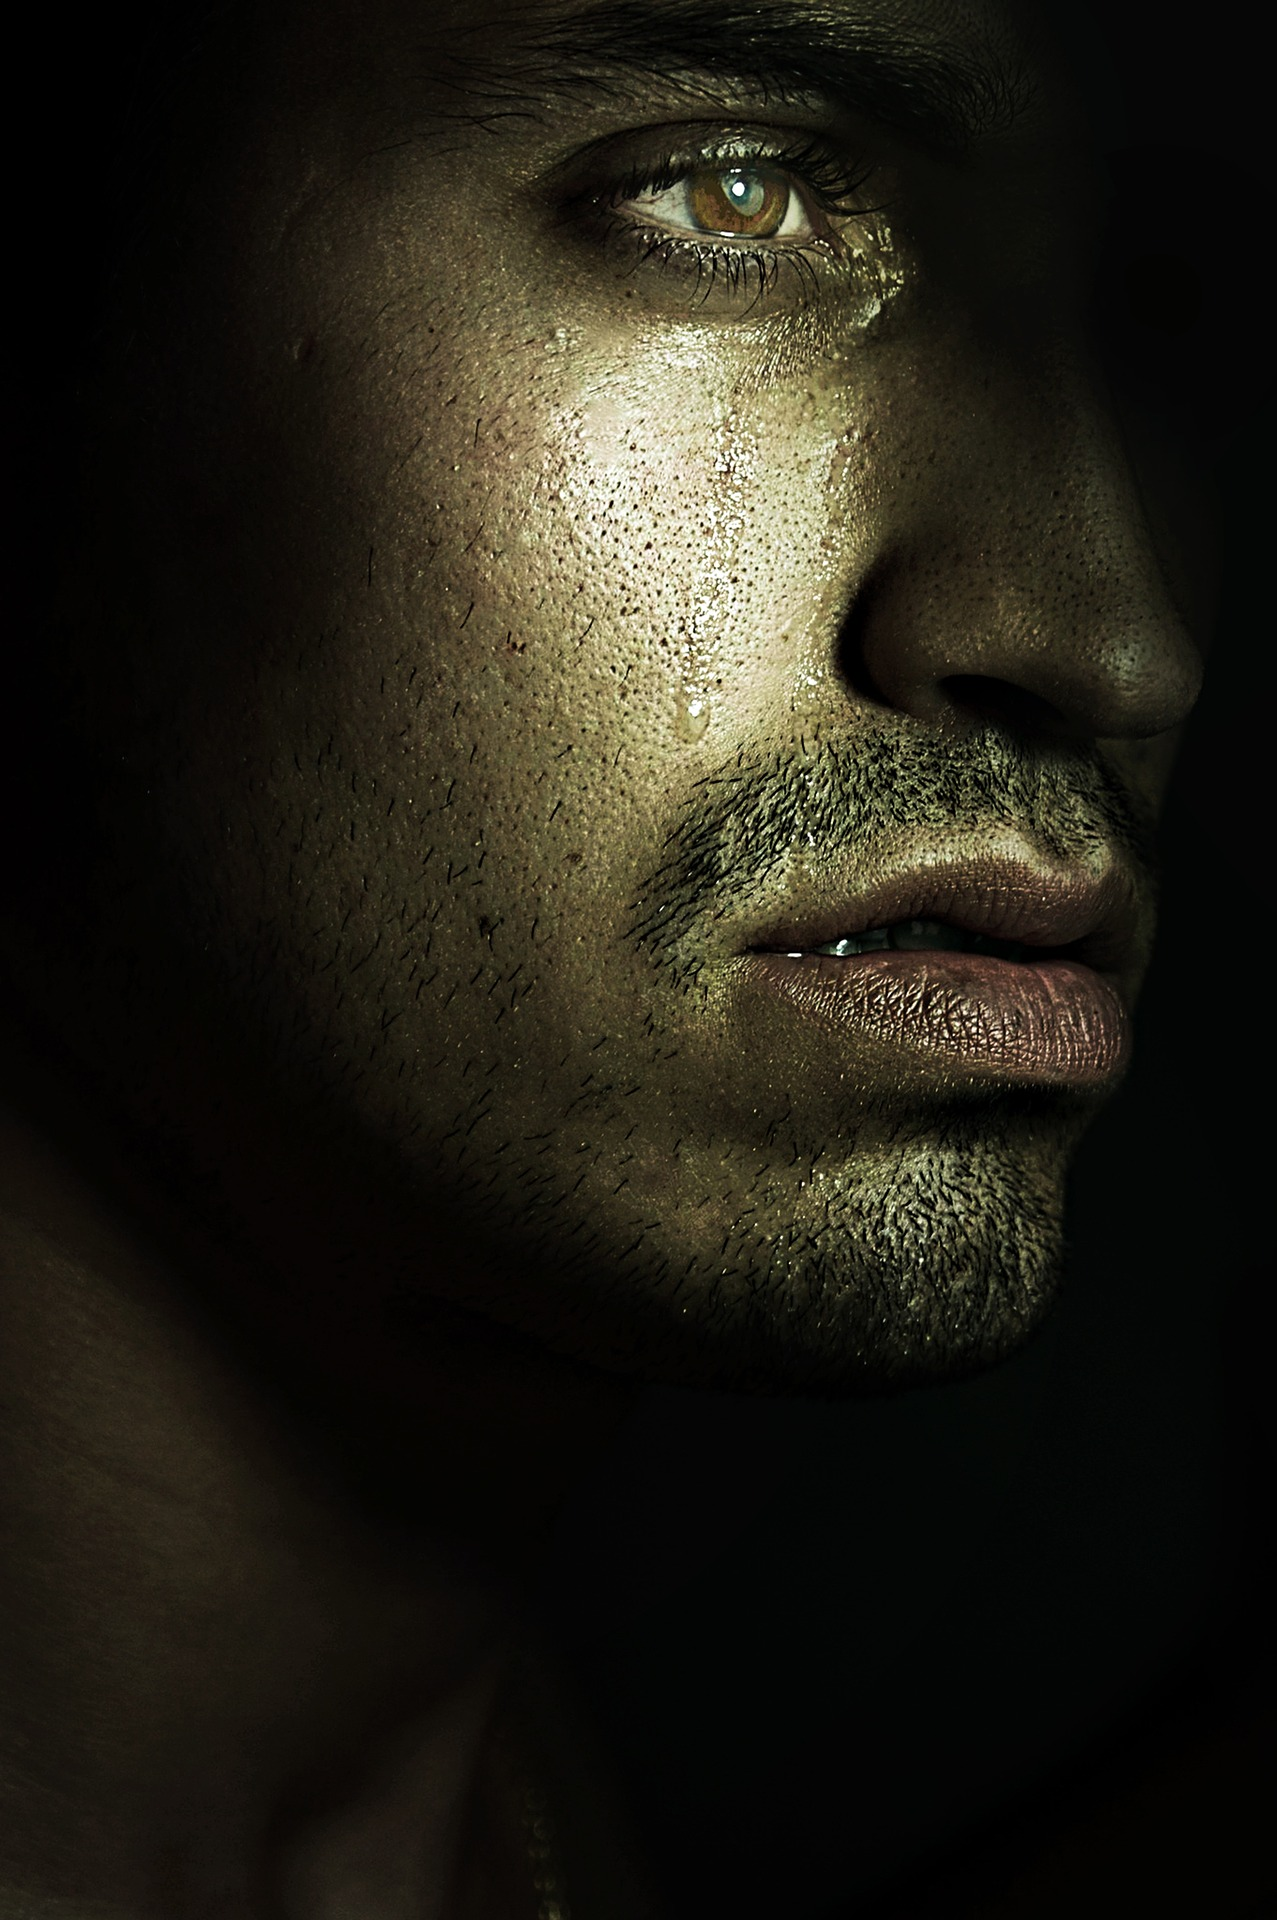 profile of a man crying